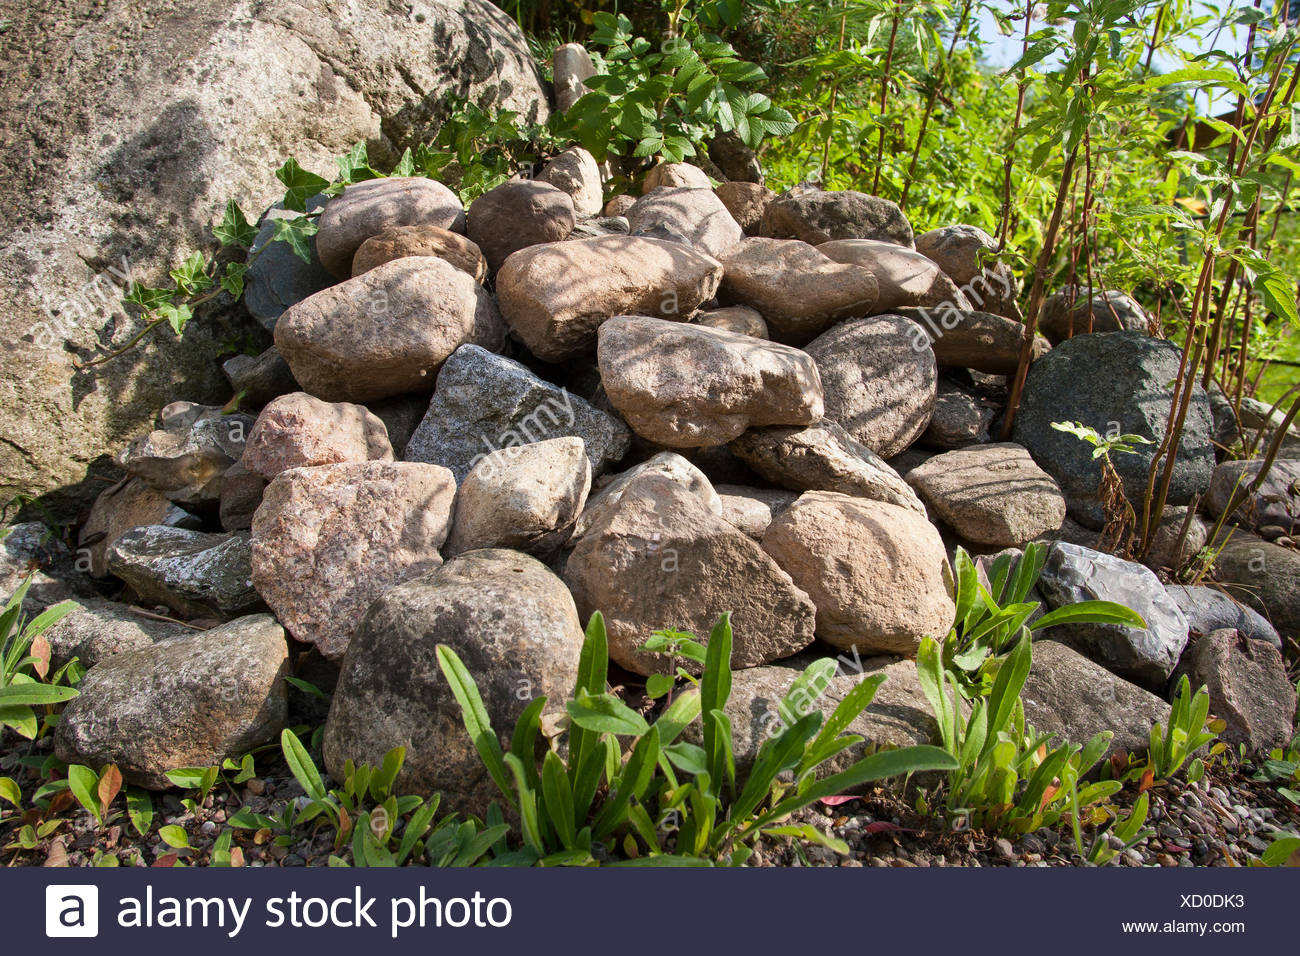 heap of stones in a garden, habitat for animals , Germany - Stock Image